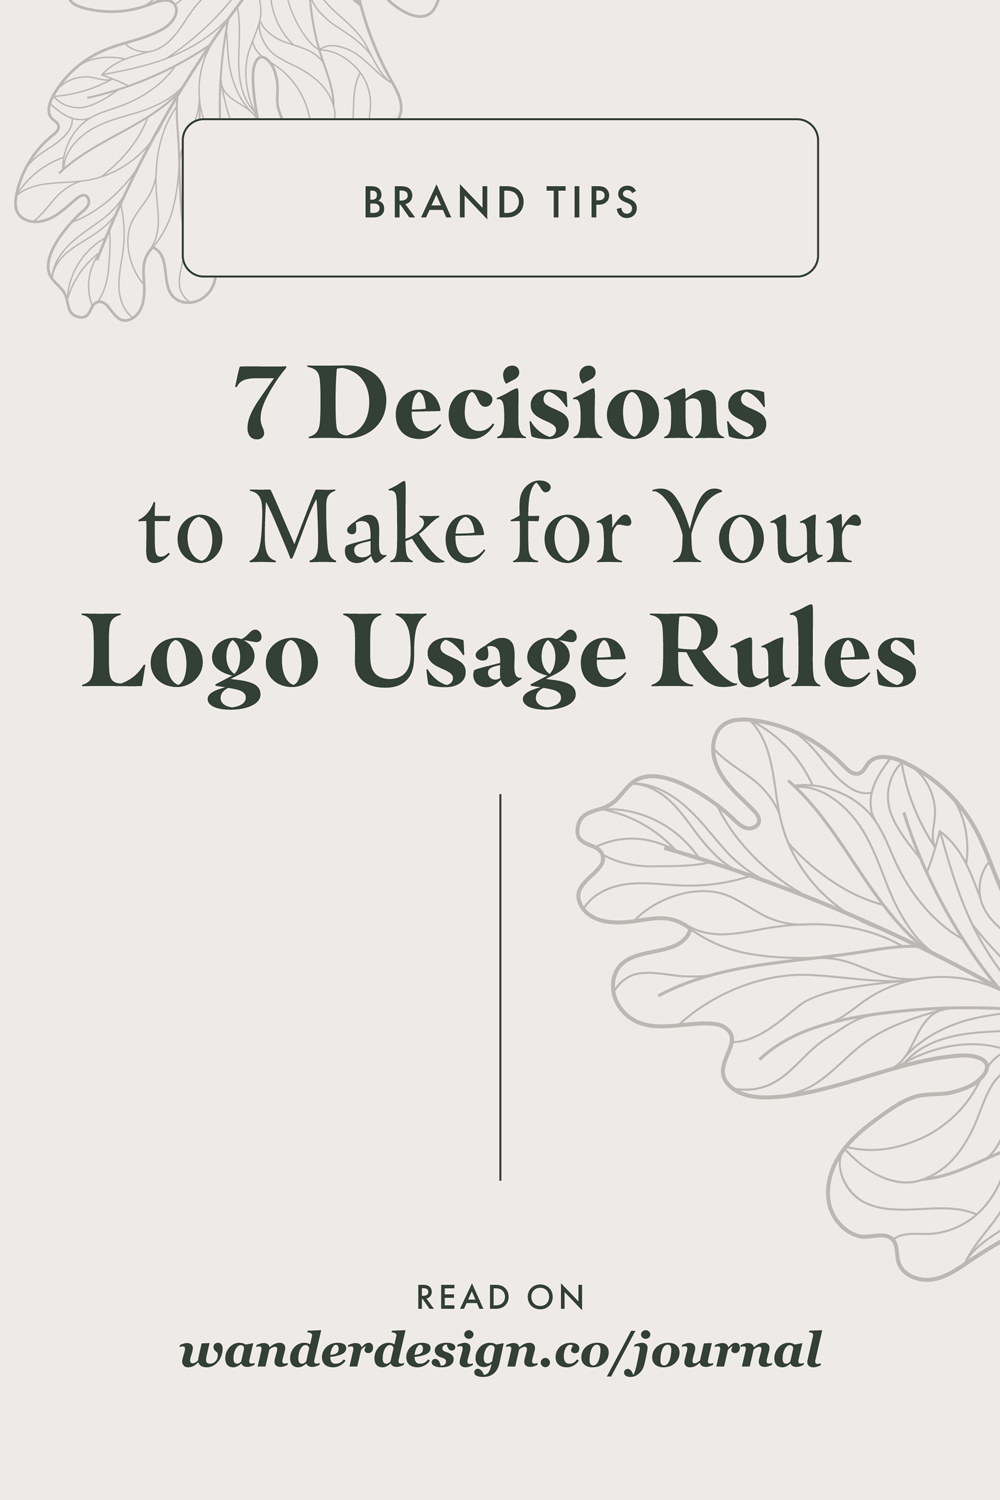 7 Decisions to Make for Your Logo Usage Rules